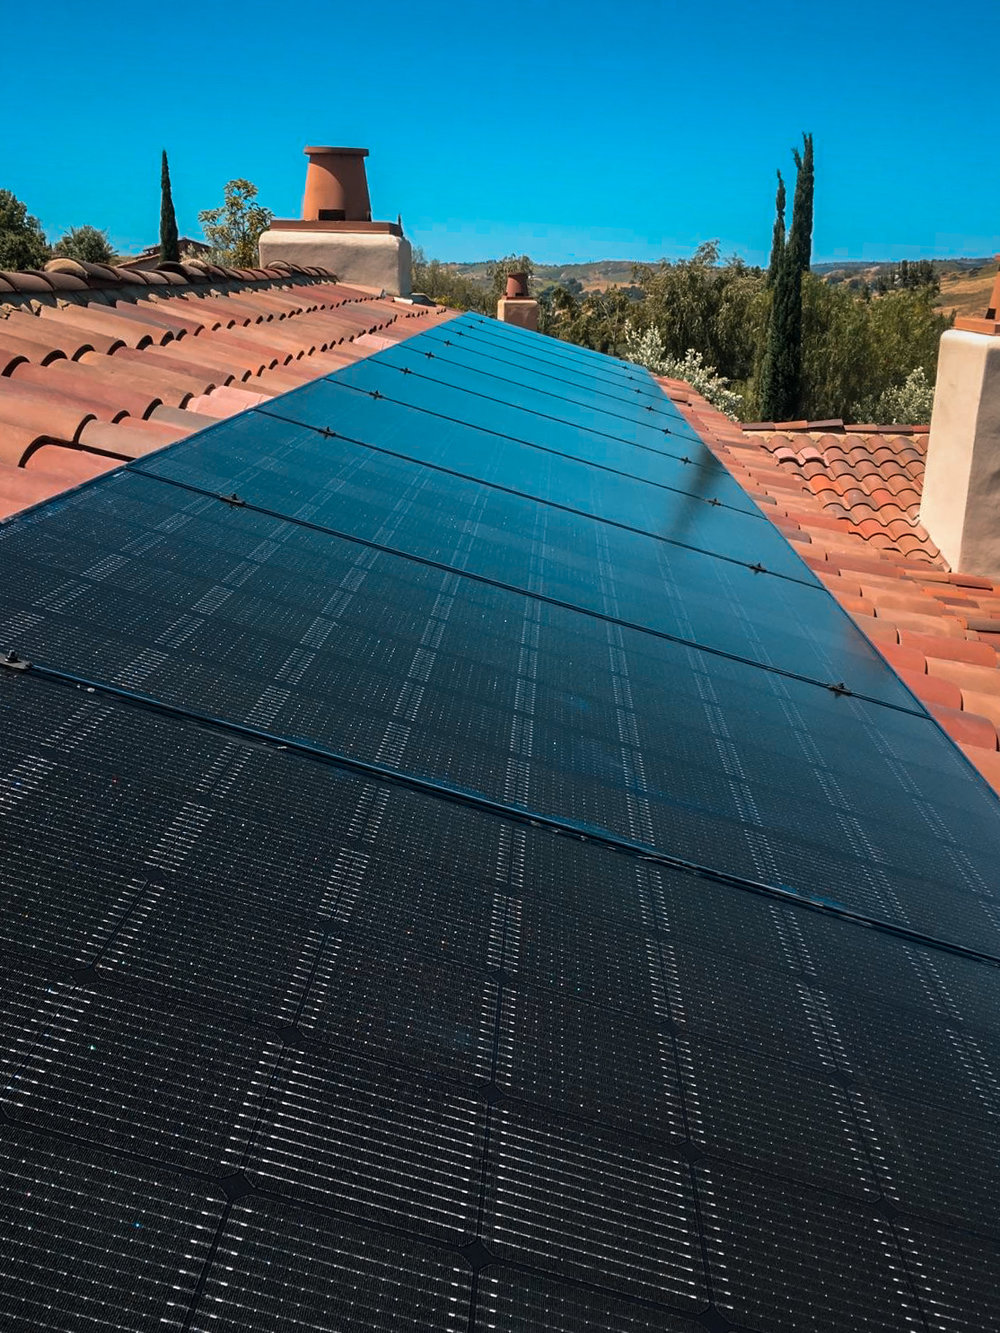 LADERA RANCH, CA - 24 high efficiency PV modules total to 7.2kWDC in Ladera Ranch, CA.  The system was commissioned in 2017.  The system is estimated to save the home owner $43,000 in electricity bills over the next 25 years.